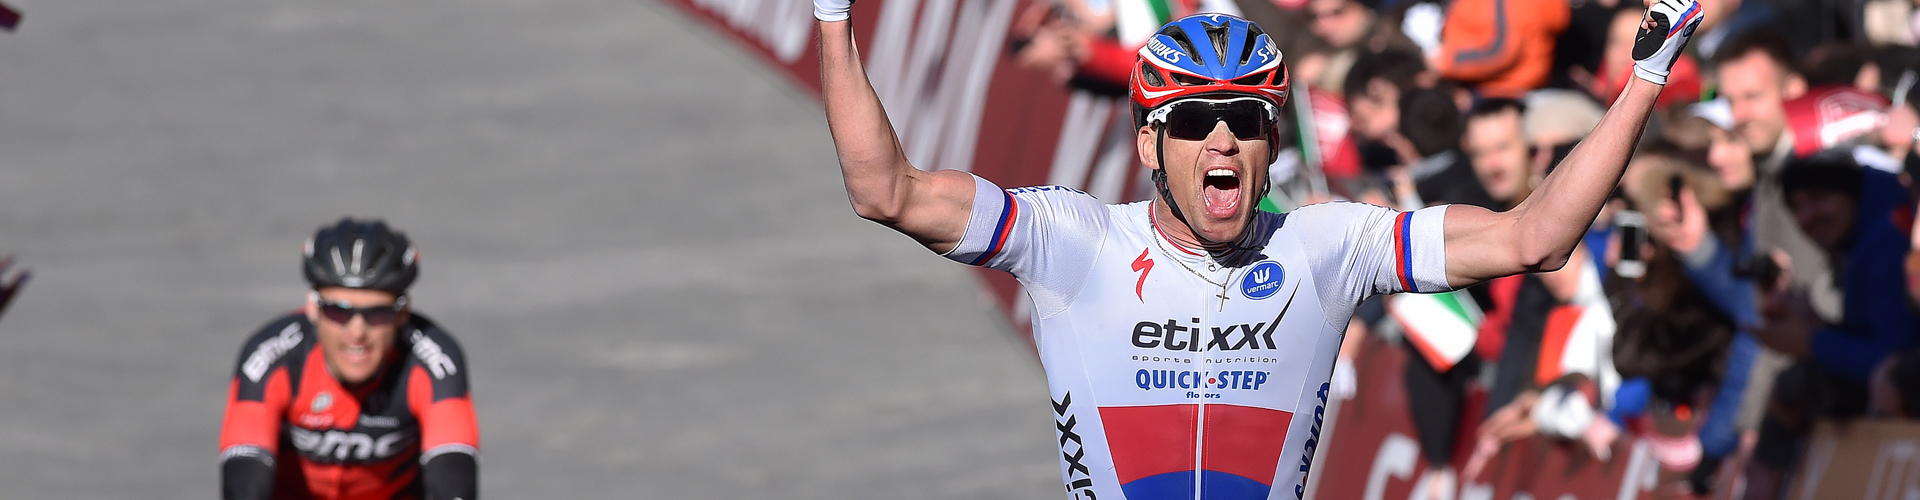 Victory for Zdenek in the Strade Bianche!!